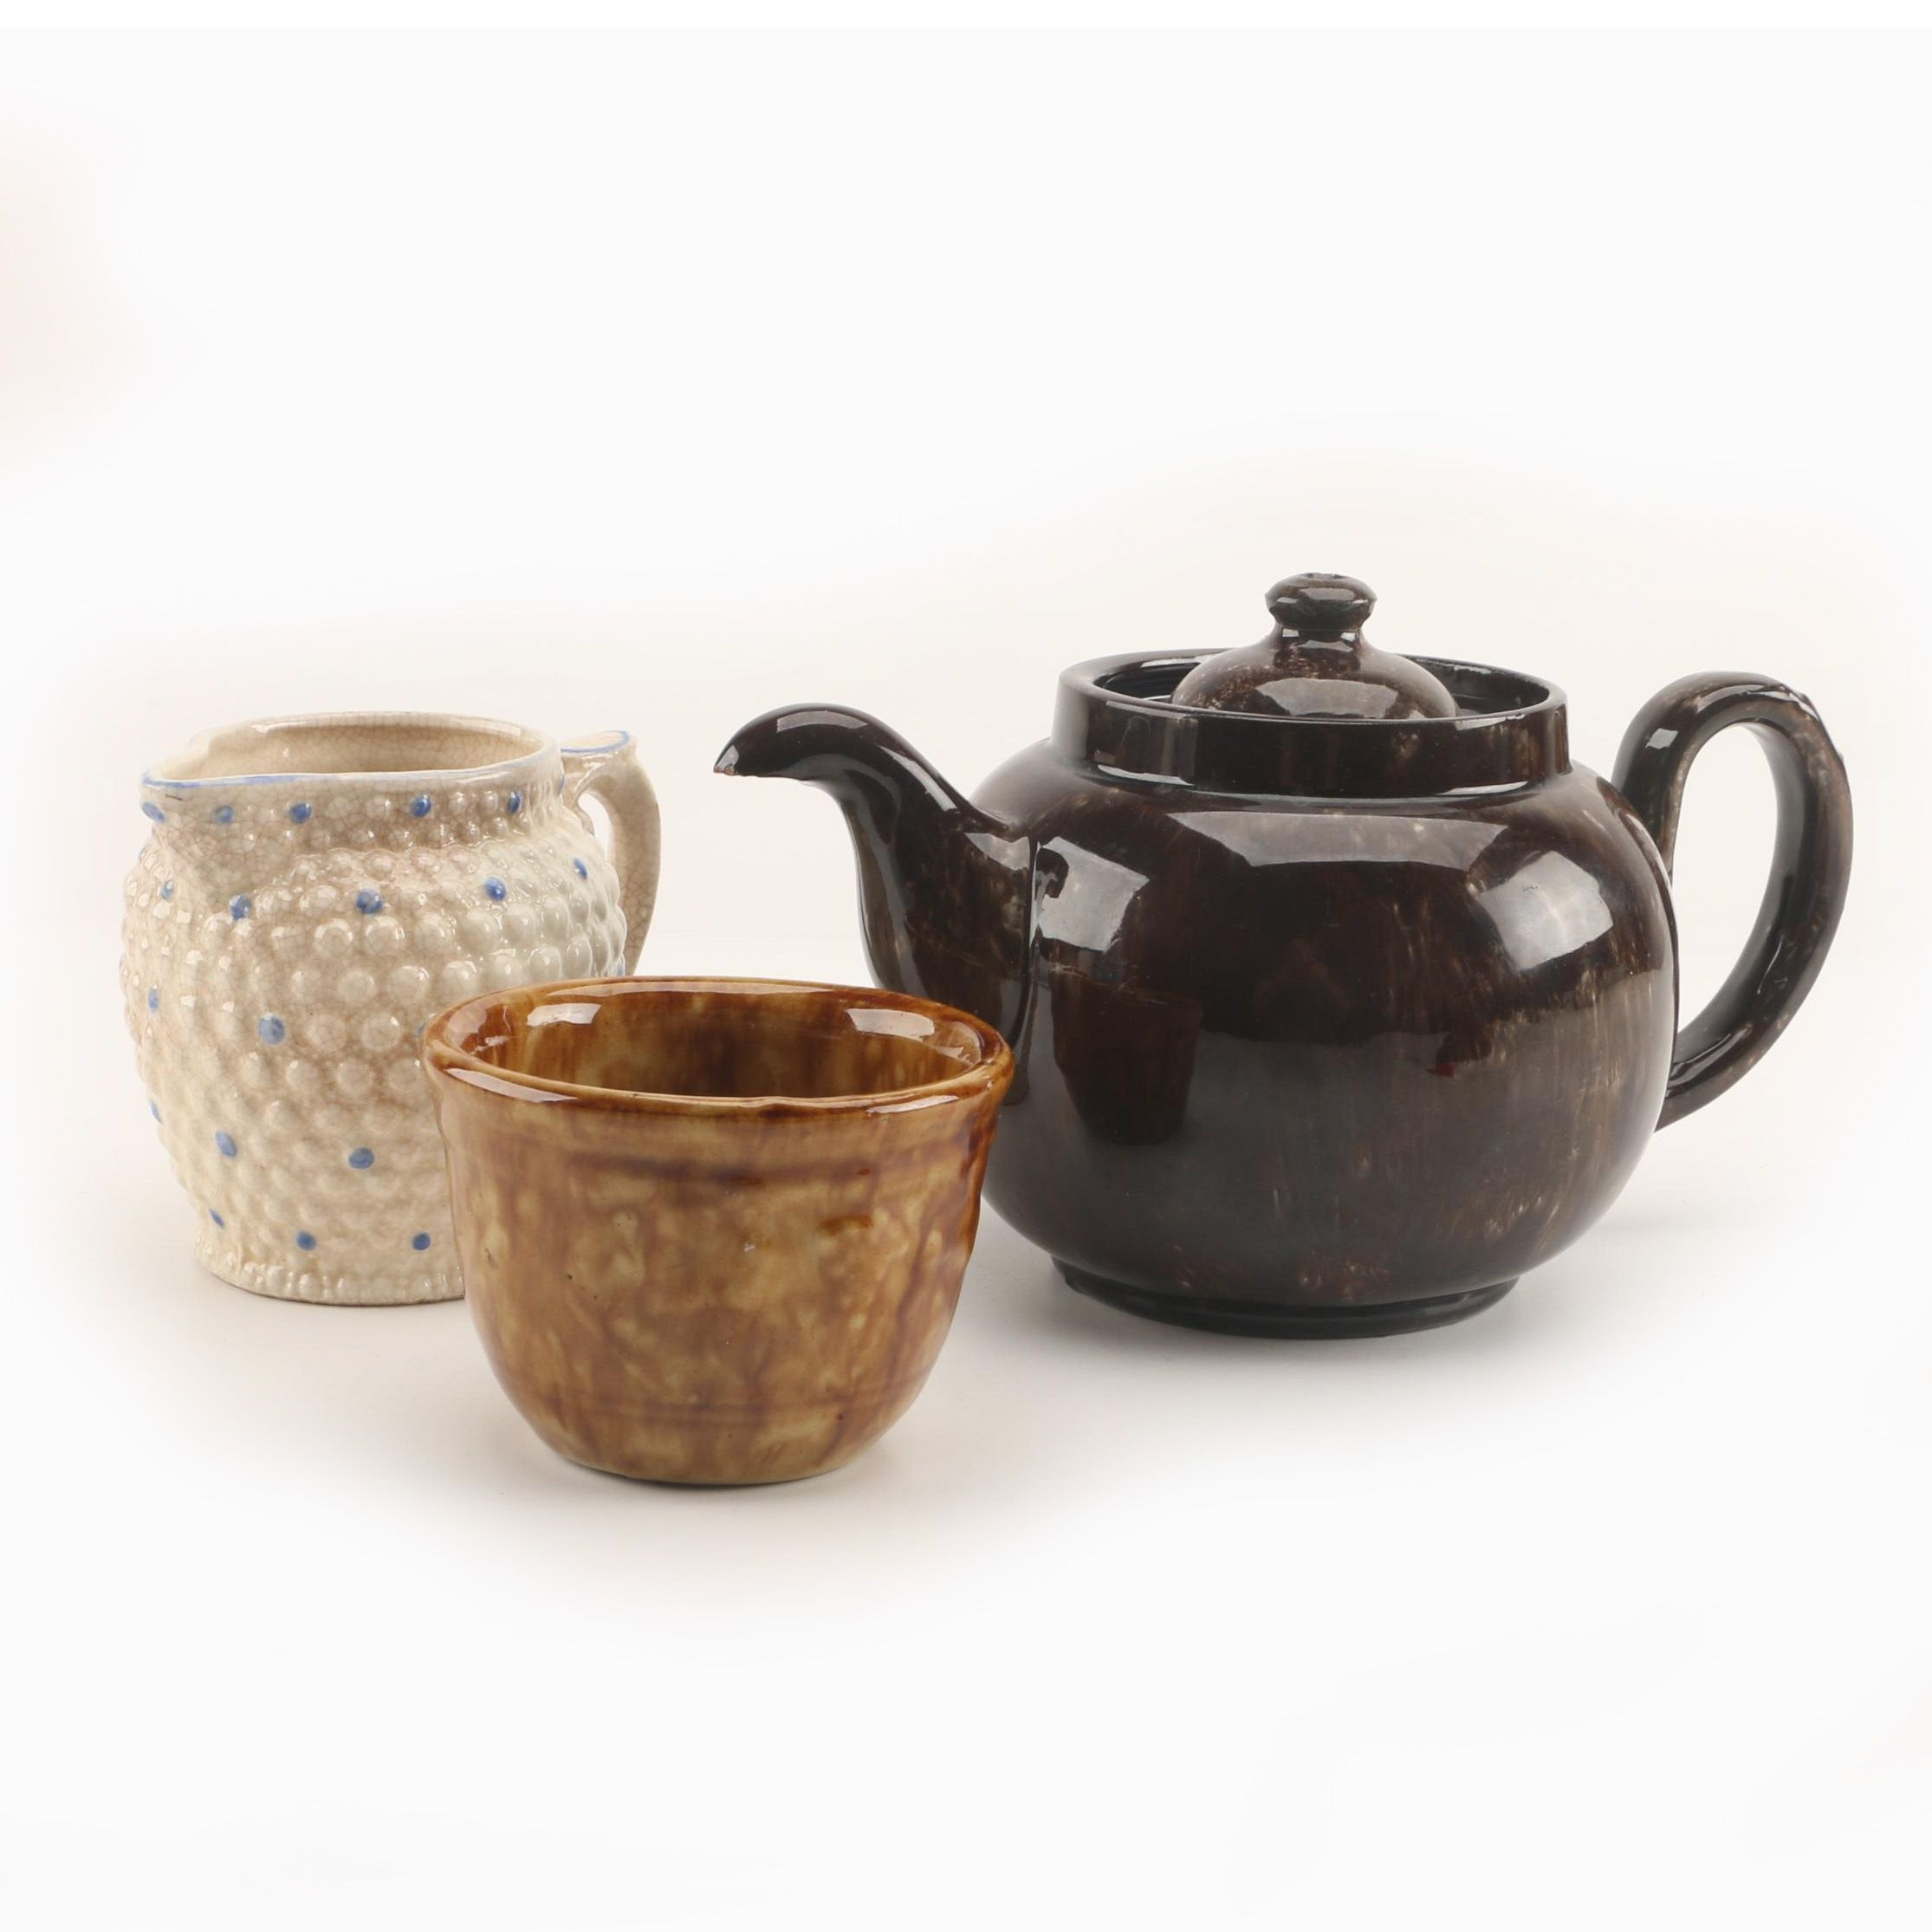 Vintage Japanese Hobnail Creamer with Teapot and Open Sugar Bowl